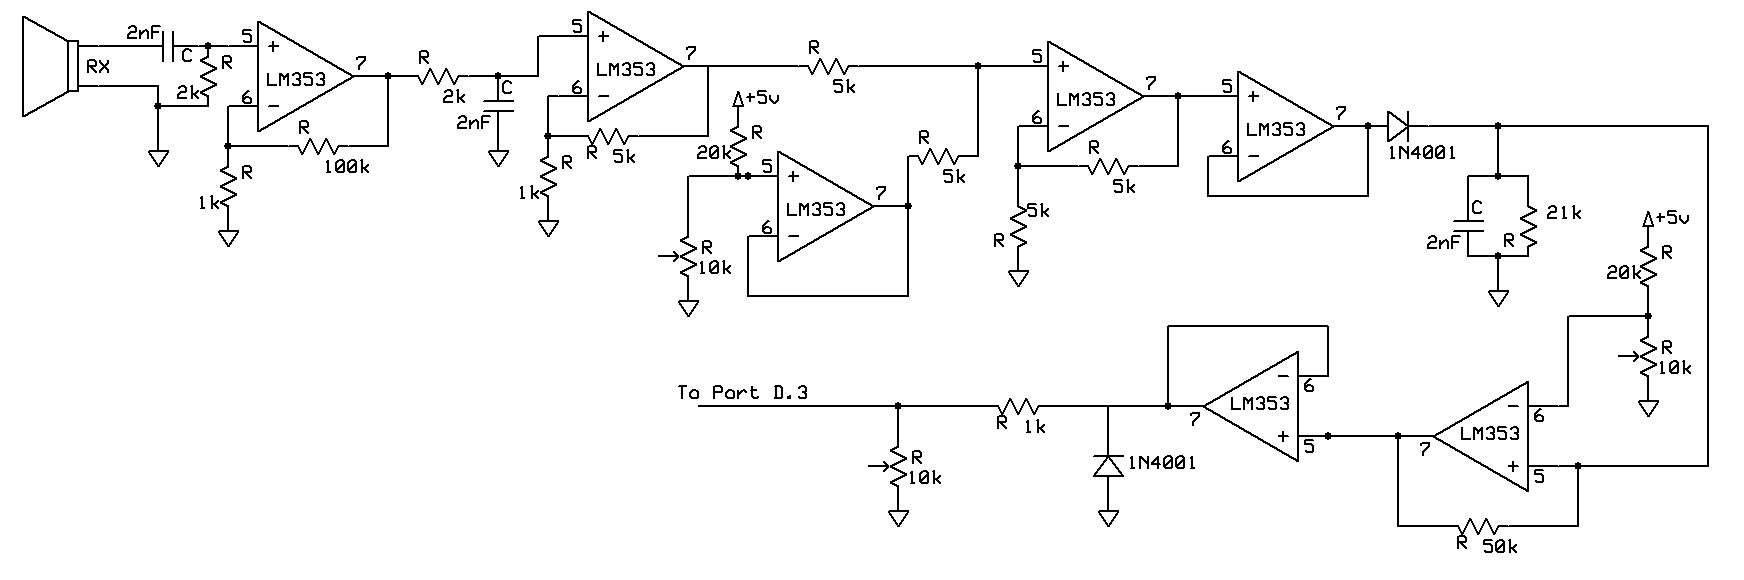 hight resolution of b schematics schematic of the ultrasonic